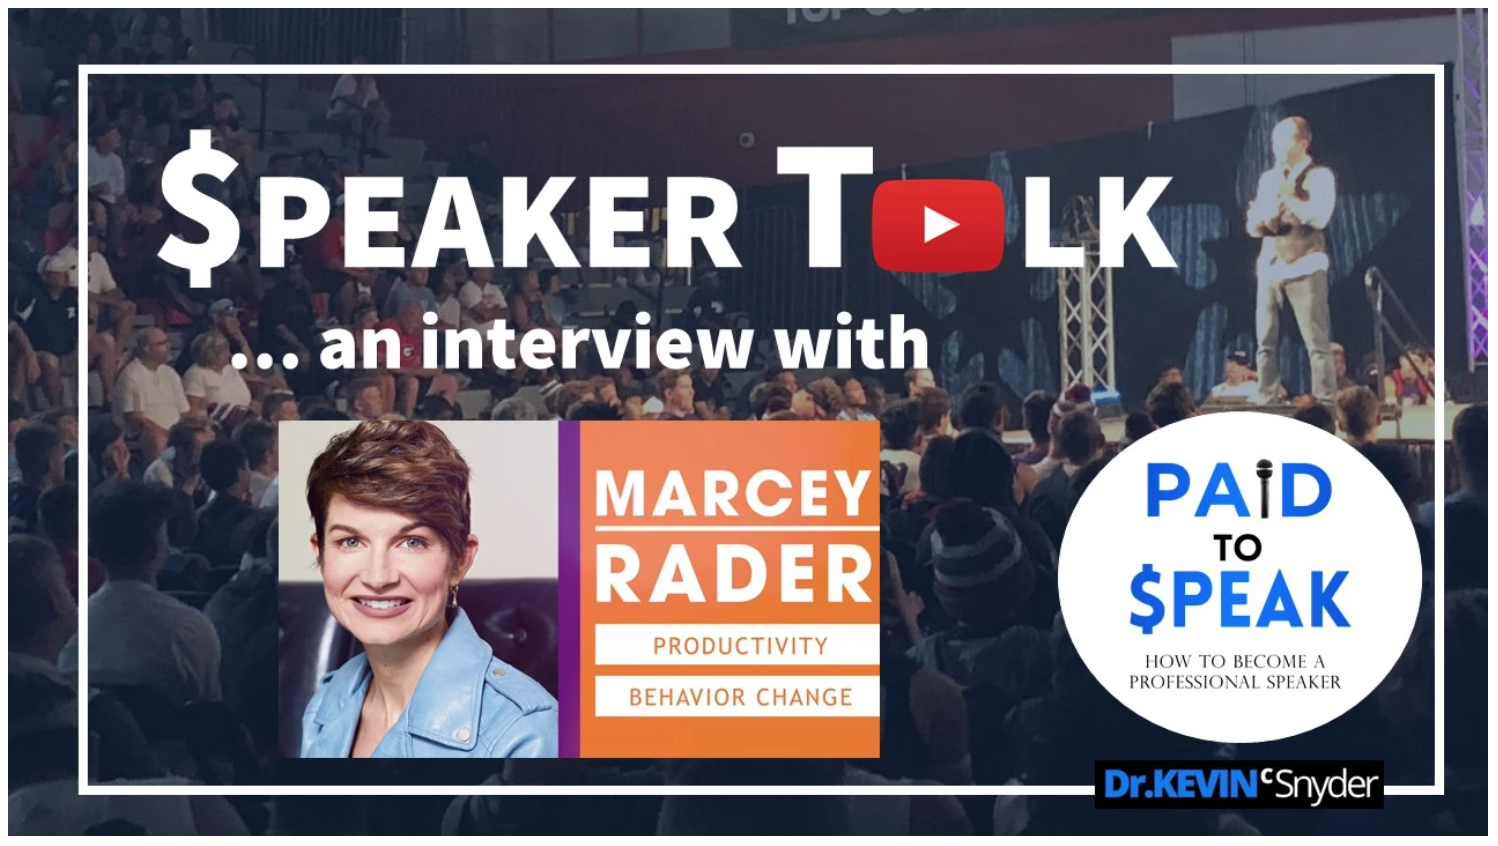 """$peaker Talk"" interview with Marcey Rader 